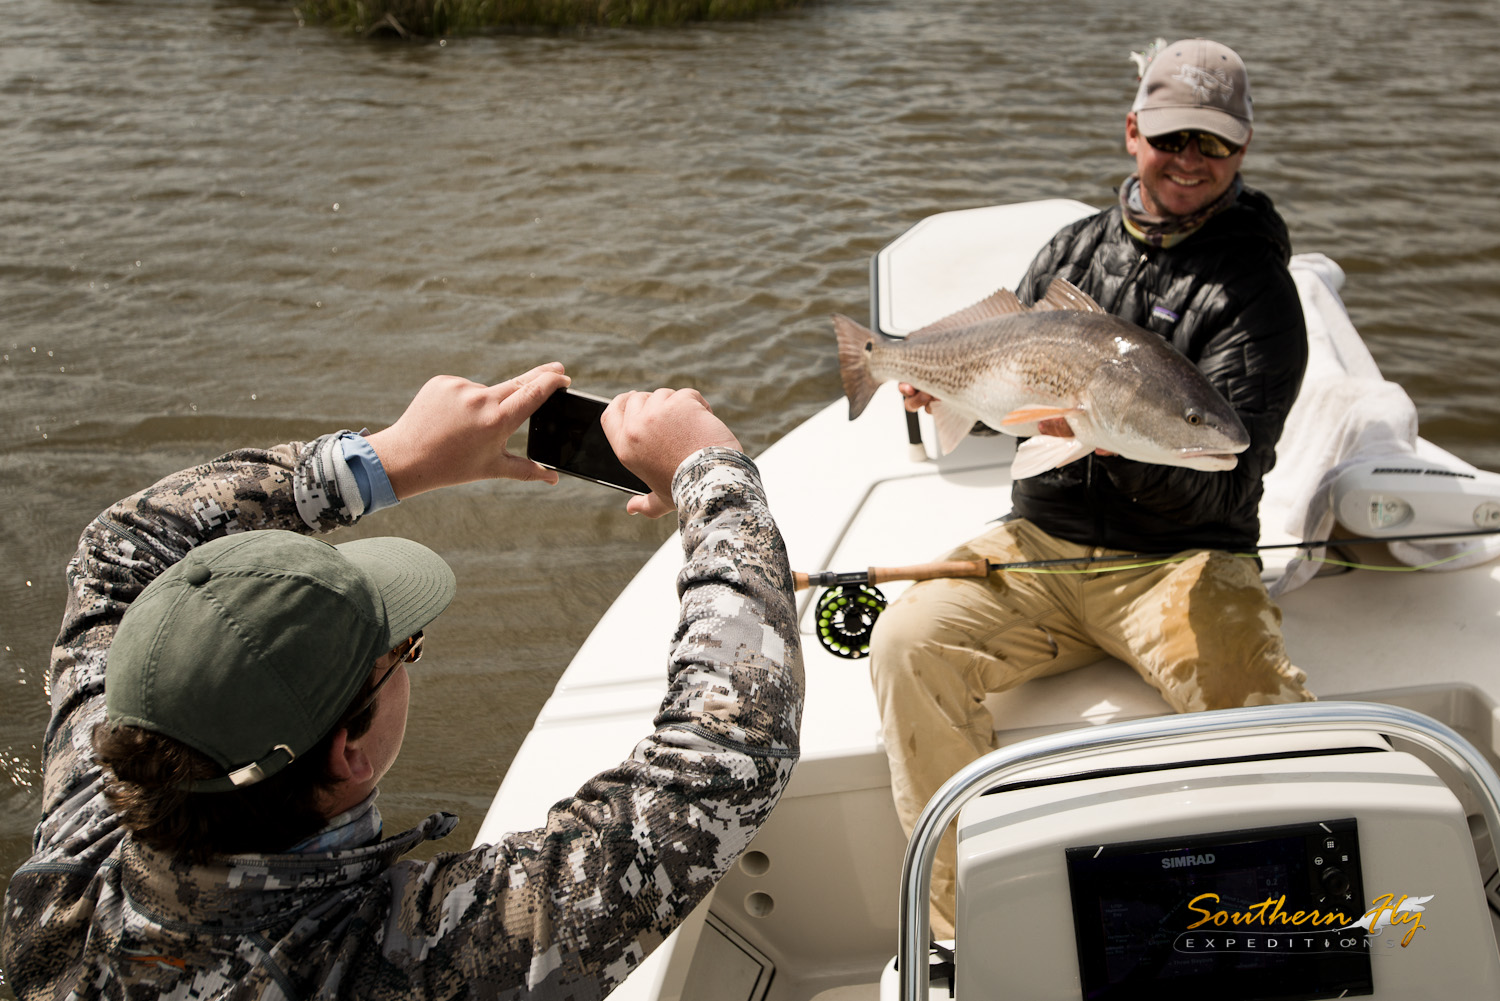 2019-03-29_SouthernFlyExpeditions_NewOrleans_TylerTreece&DylanTreece-9.jpg